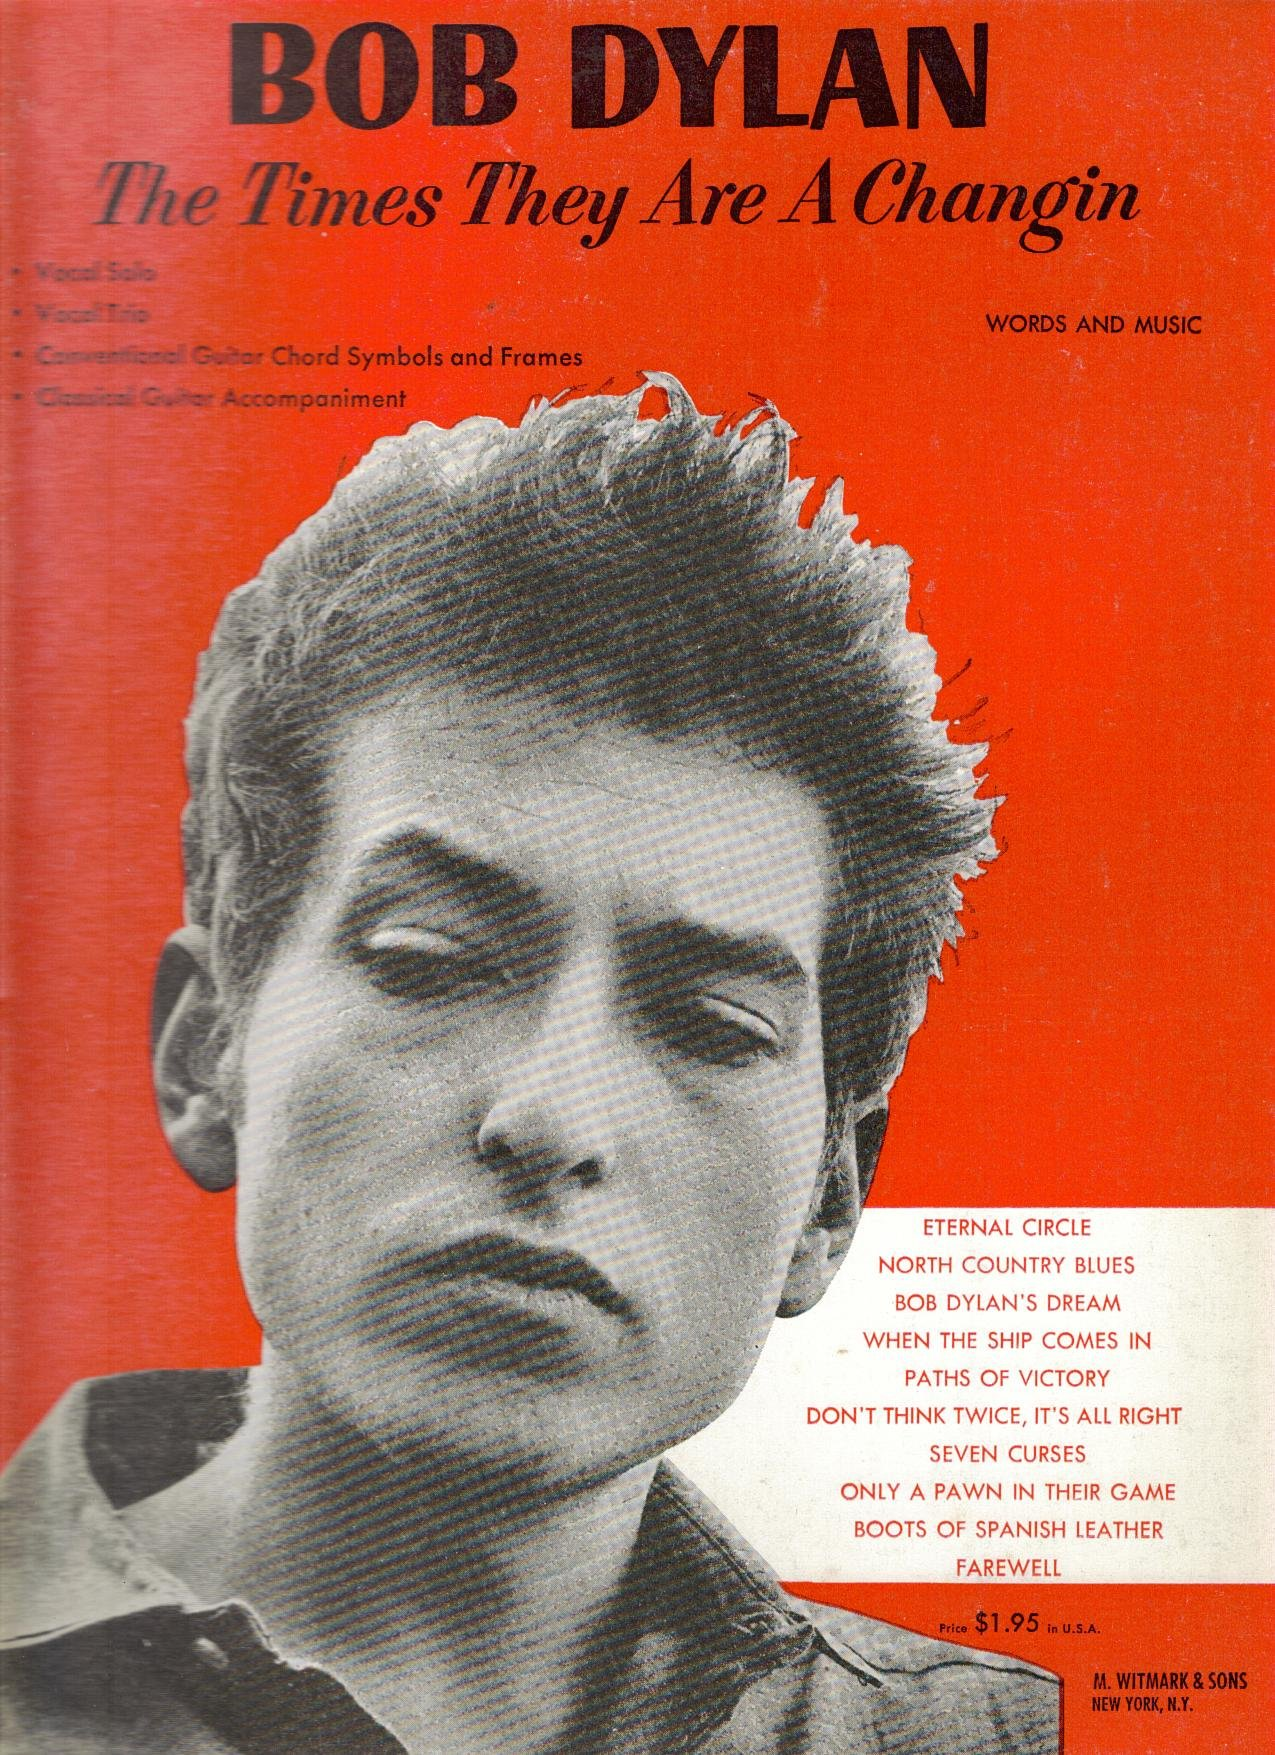 Bob dylan the times they are a changin words music jerry sears bob dylan the times they are a changin words music jerry sears bob dylan amazon books hexwebz Images